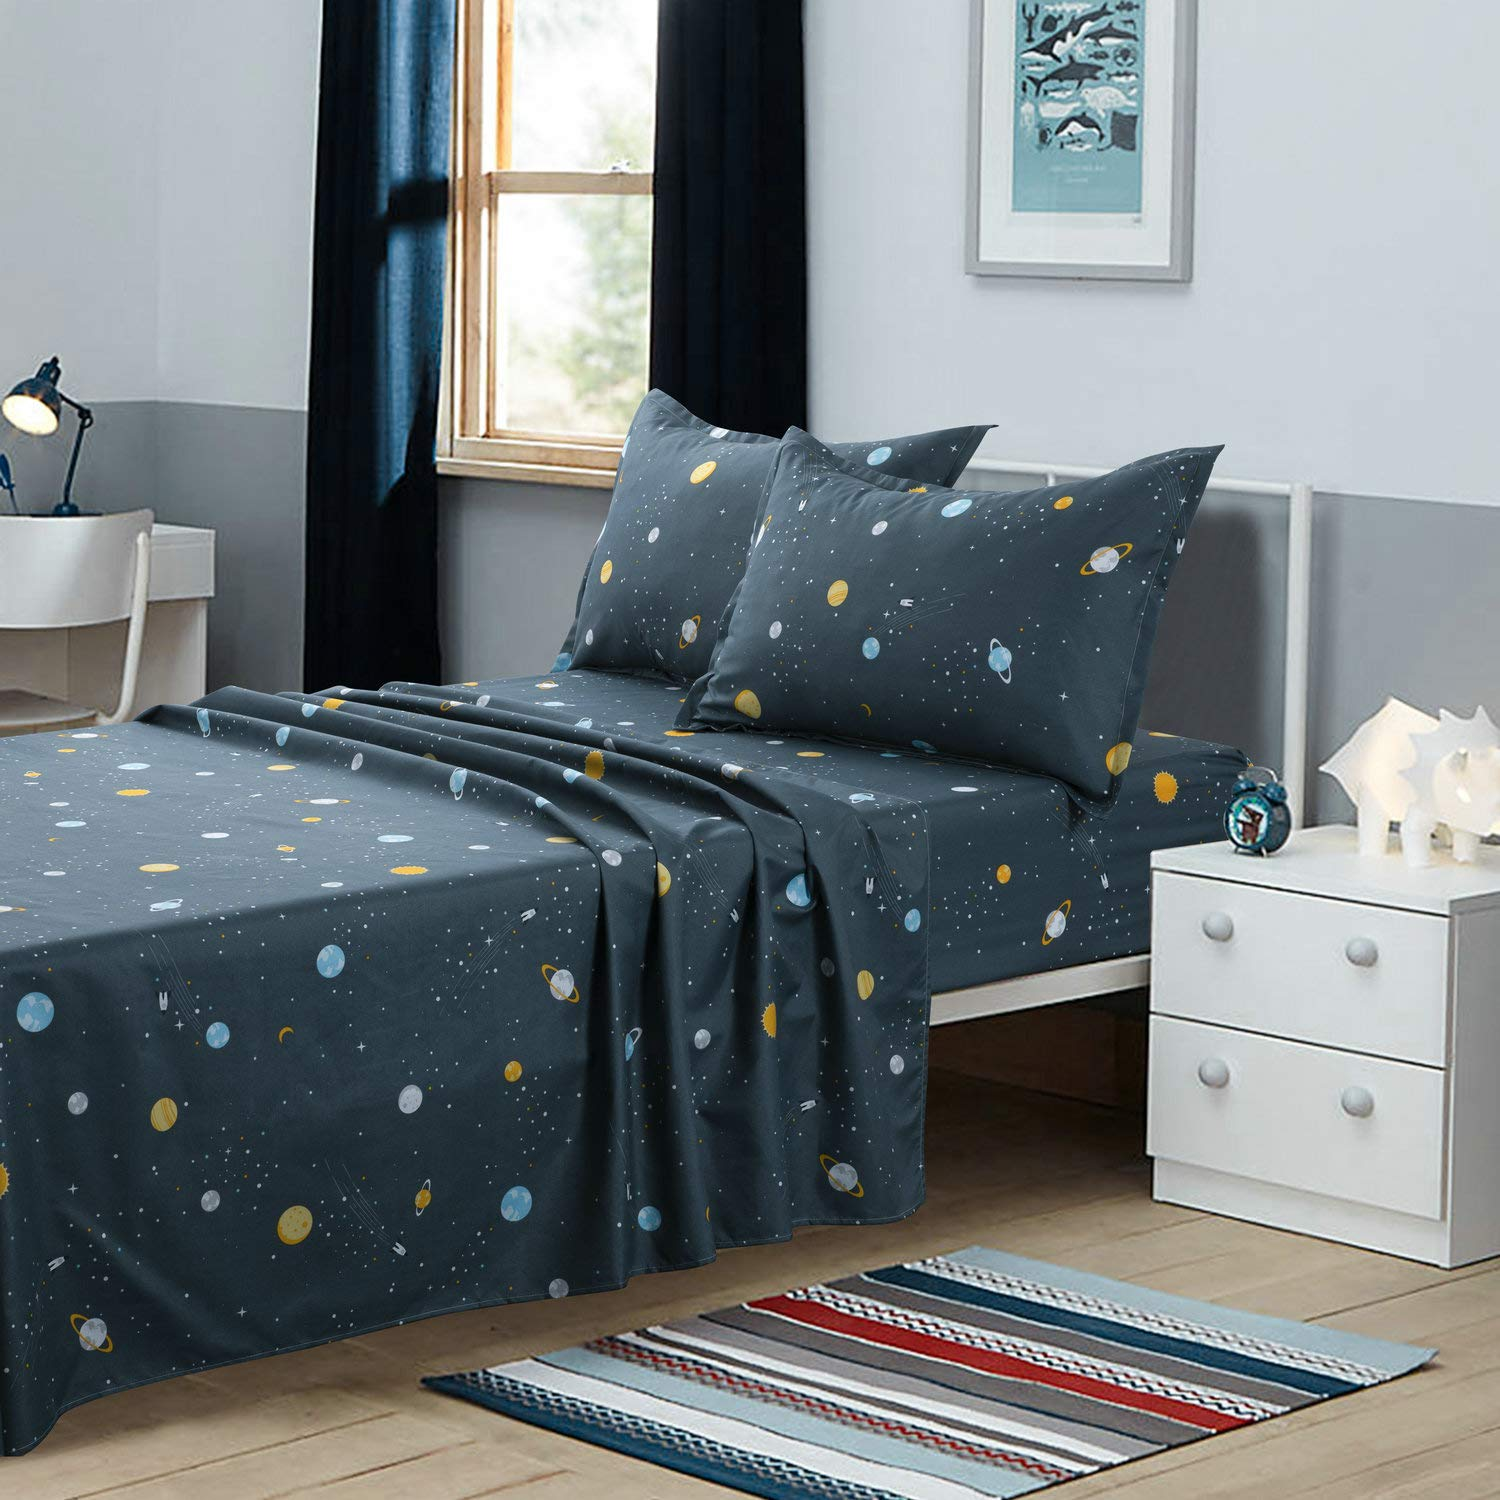 TOTORO Galaxy Bedding Twin Size, 4 Piece Bed Sheets Set with 1 Fitted Sheet 1 Flat Sheet 2 Pillowcases, Soft Easy Fit Deep Pocket Sheet for Boys and Girls